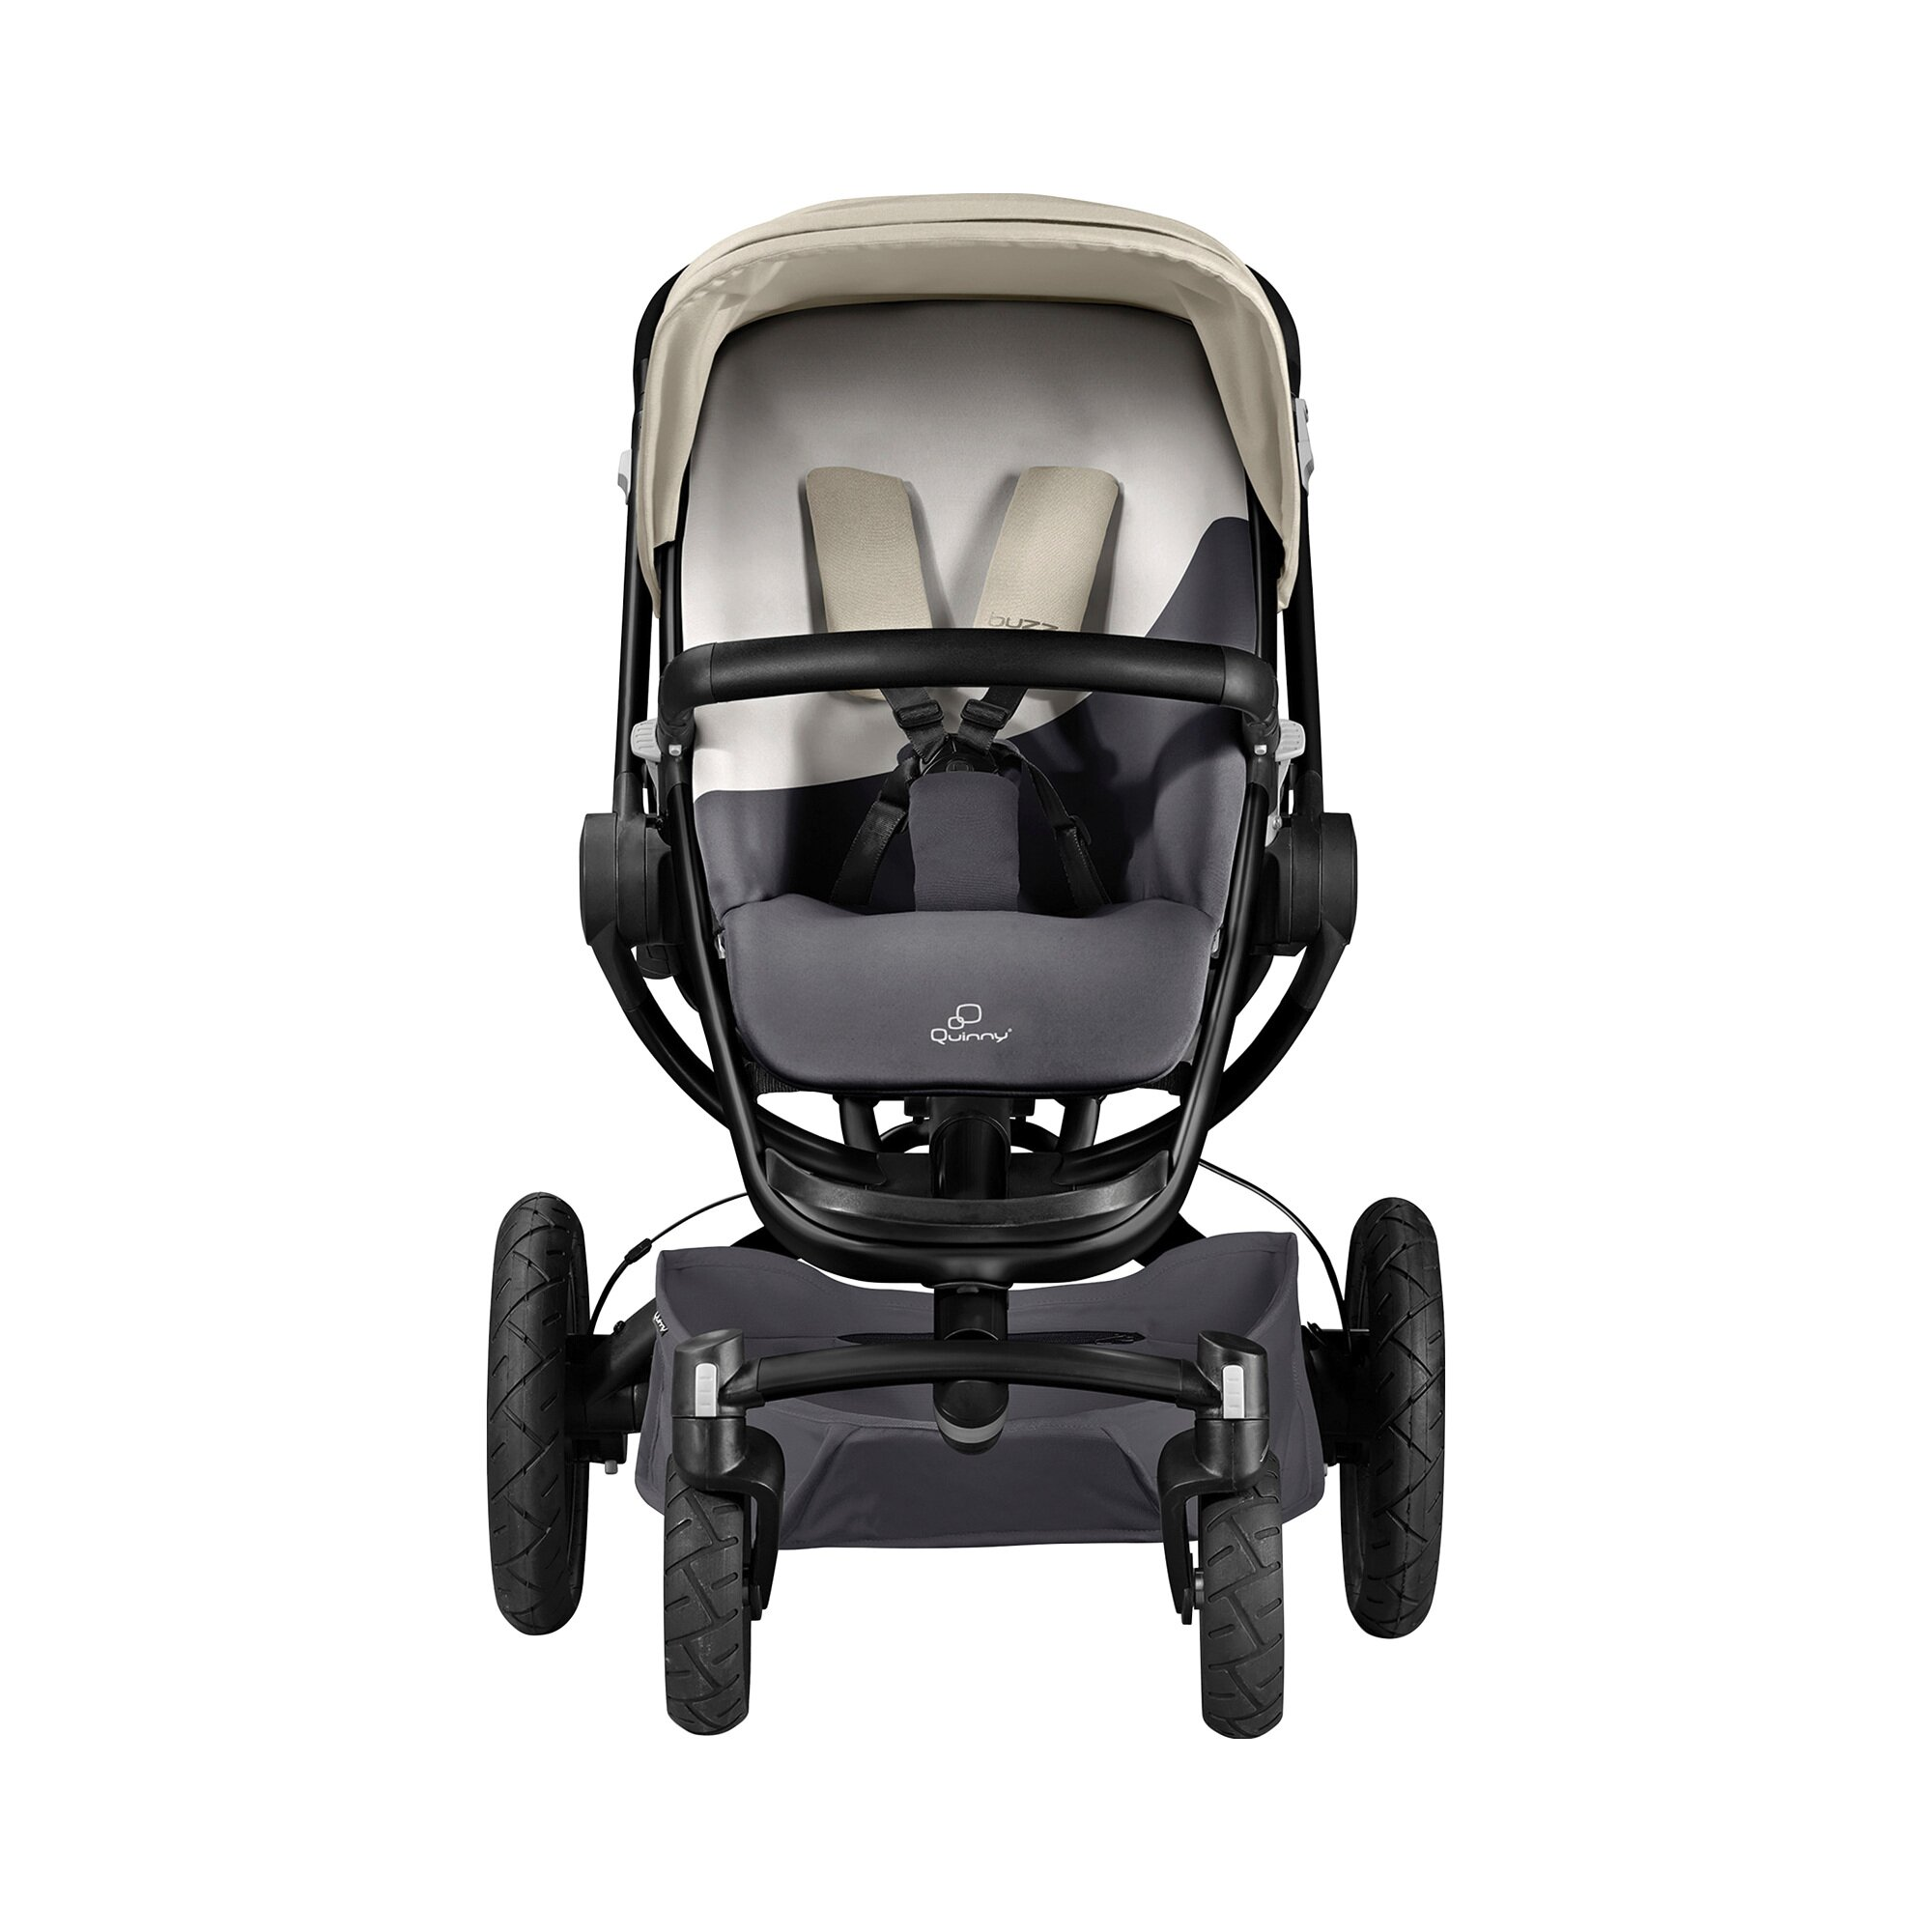 Buzz Sportbuggy Buzz Xtra Design 2016 grau